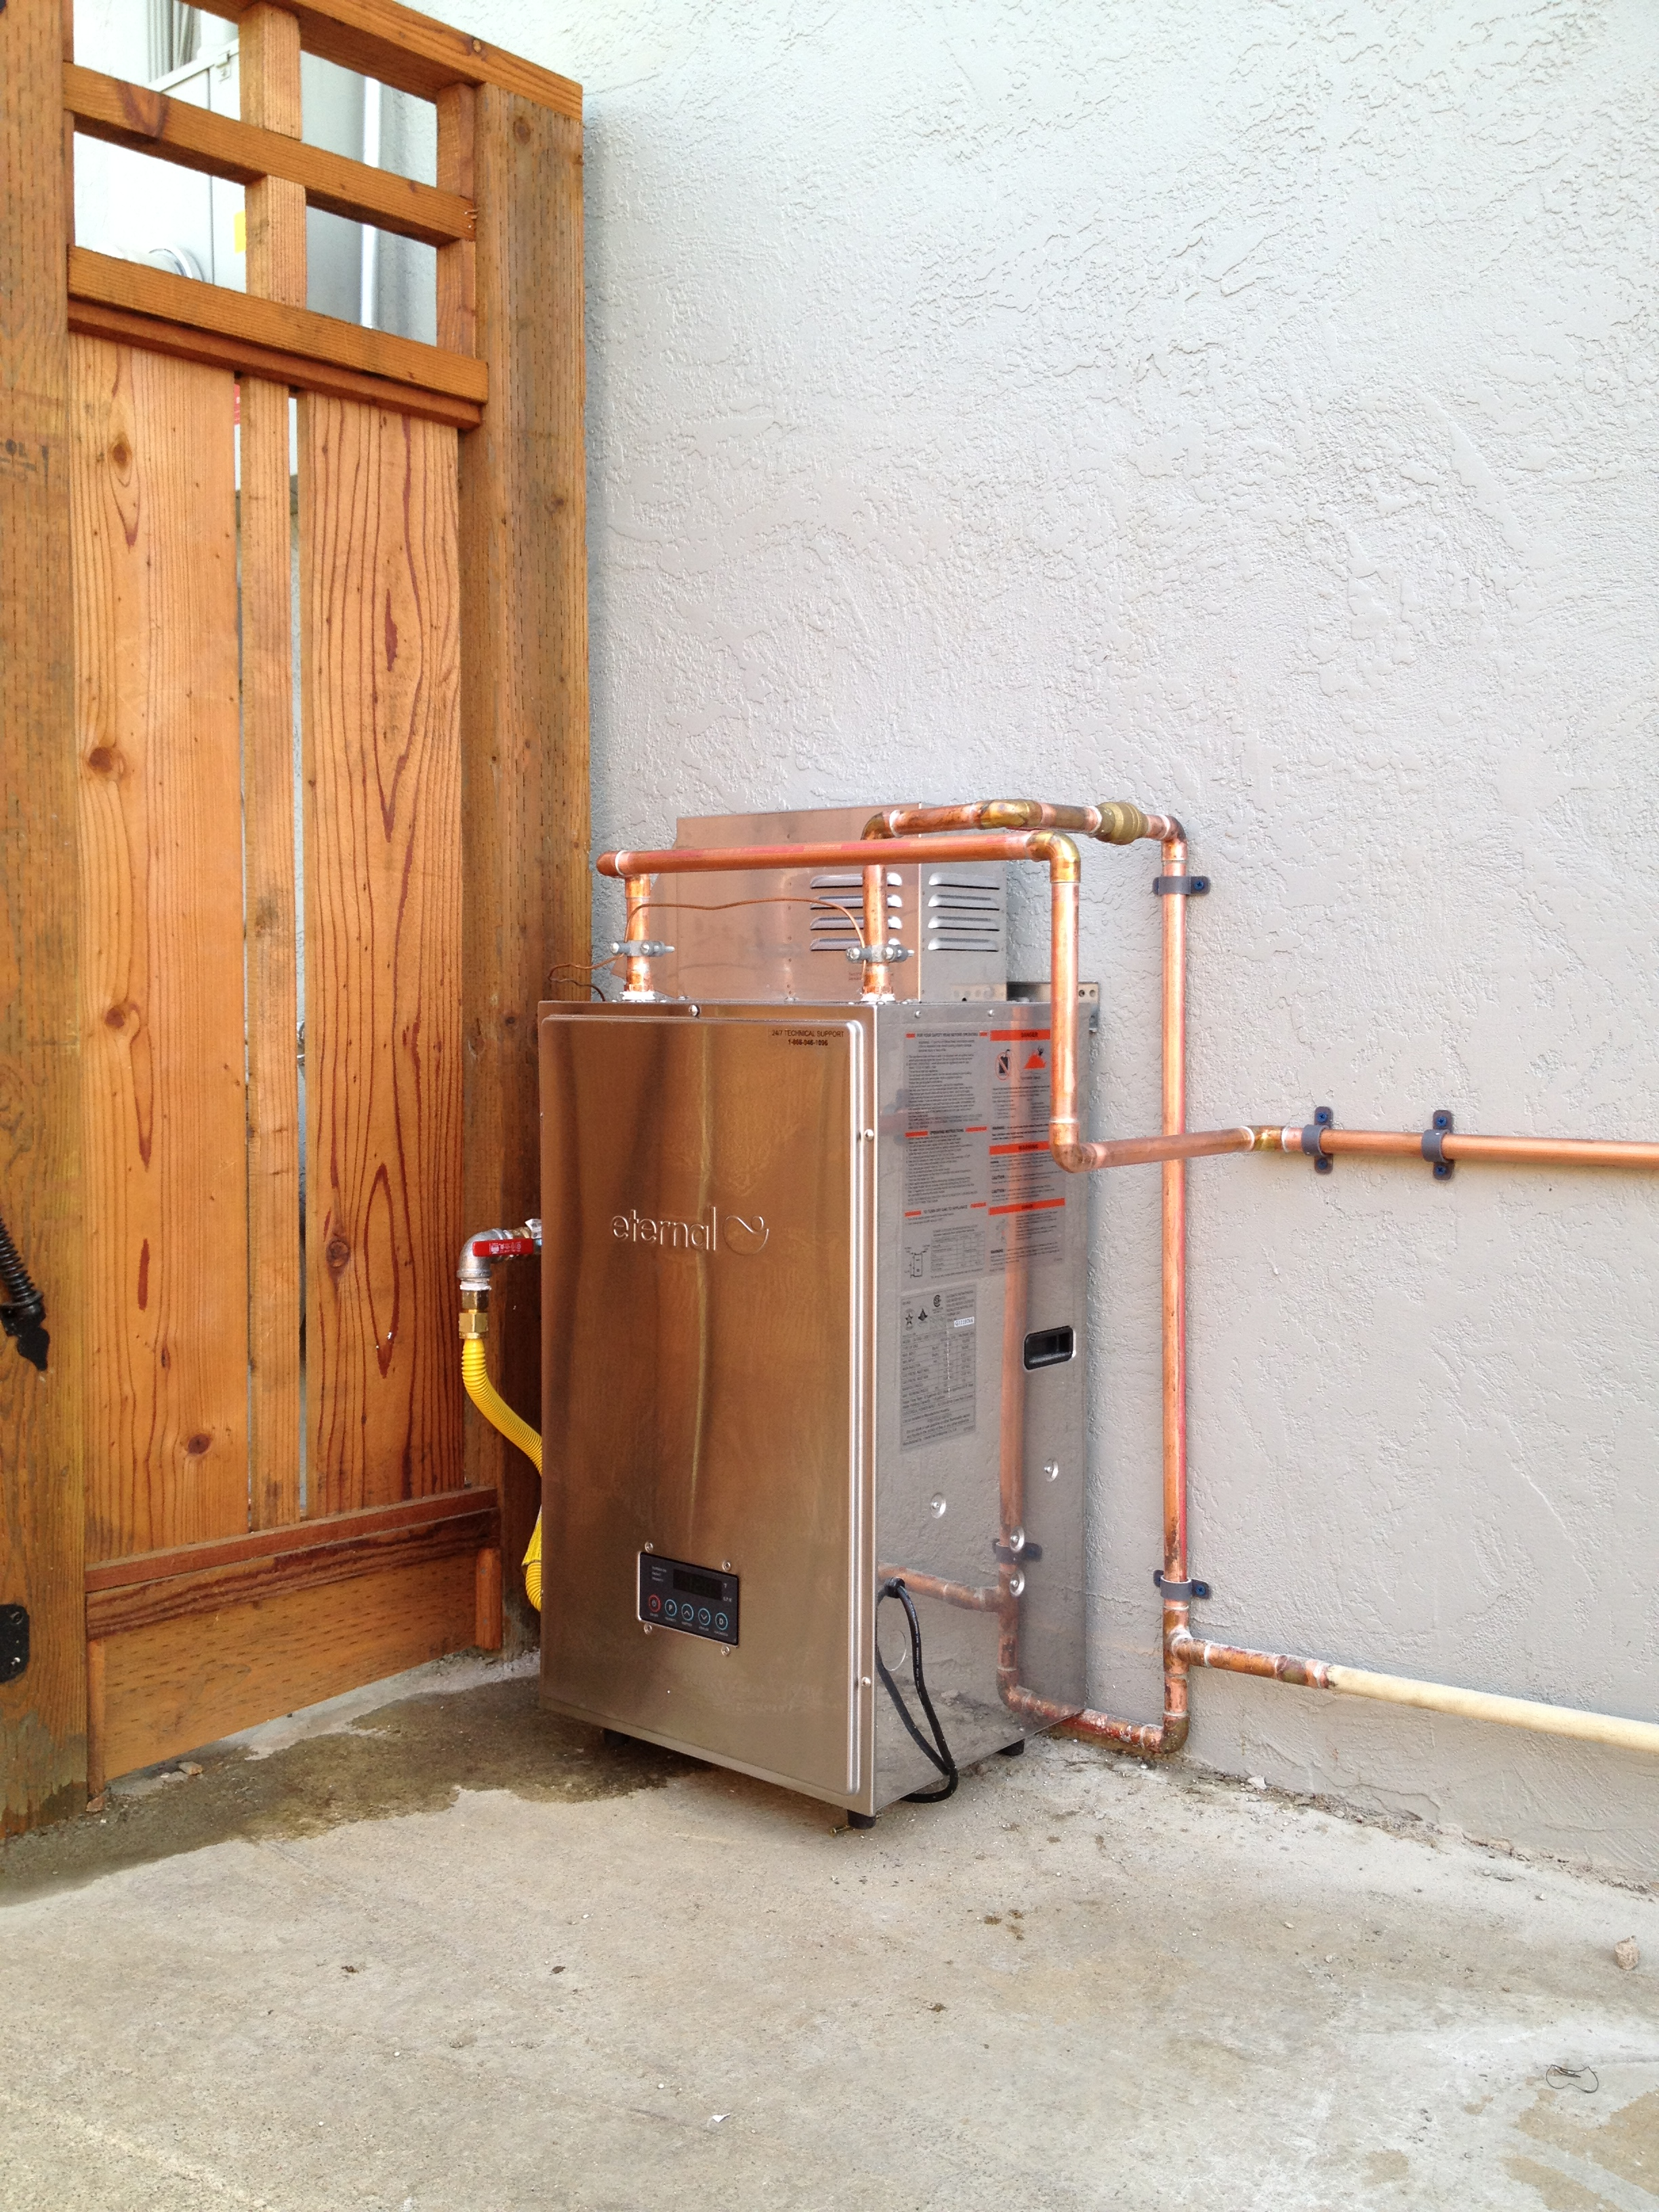 Plumber in san antonio and tankless water heater installer local fremont plumber eternal water heater ccuart Images